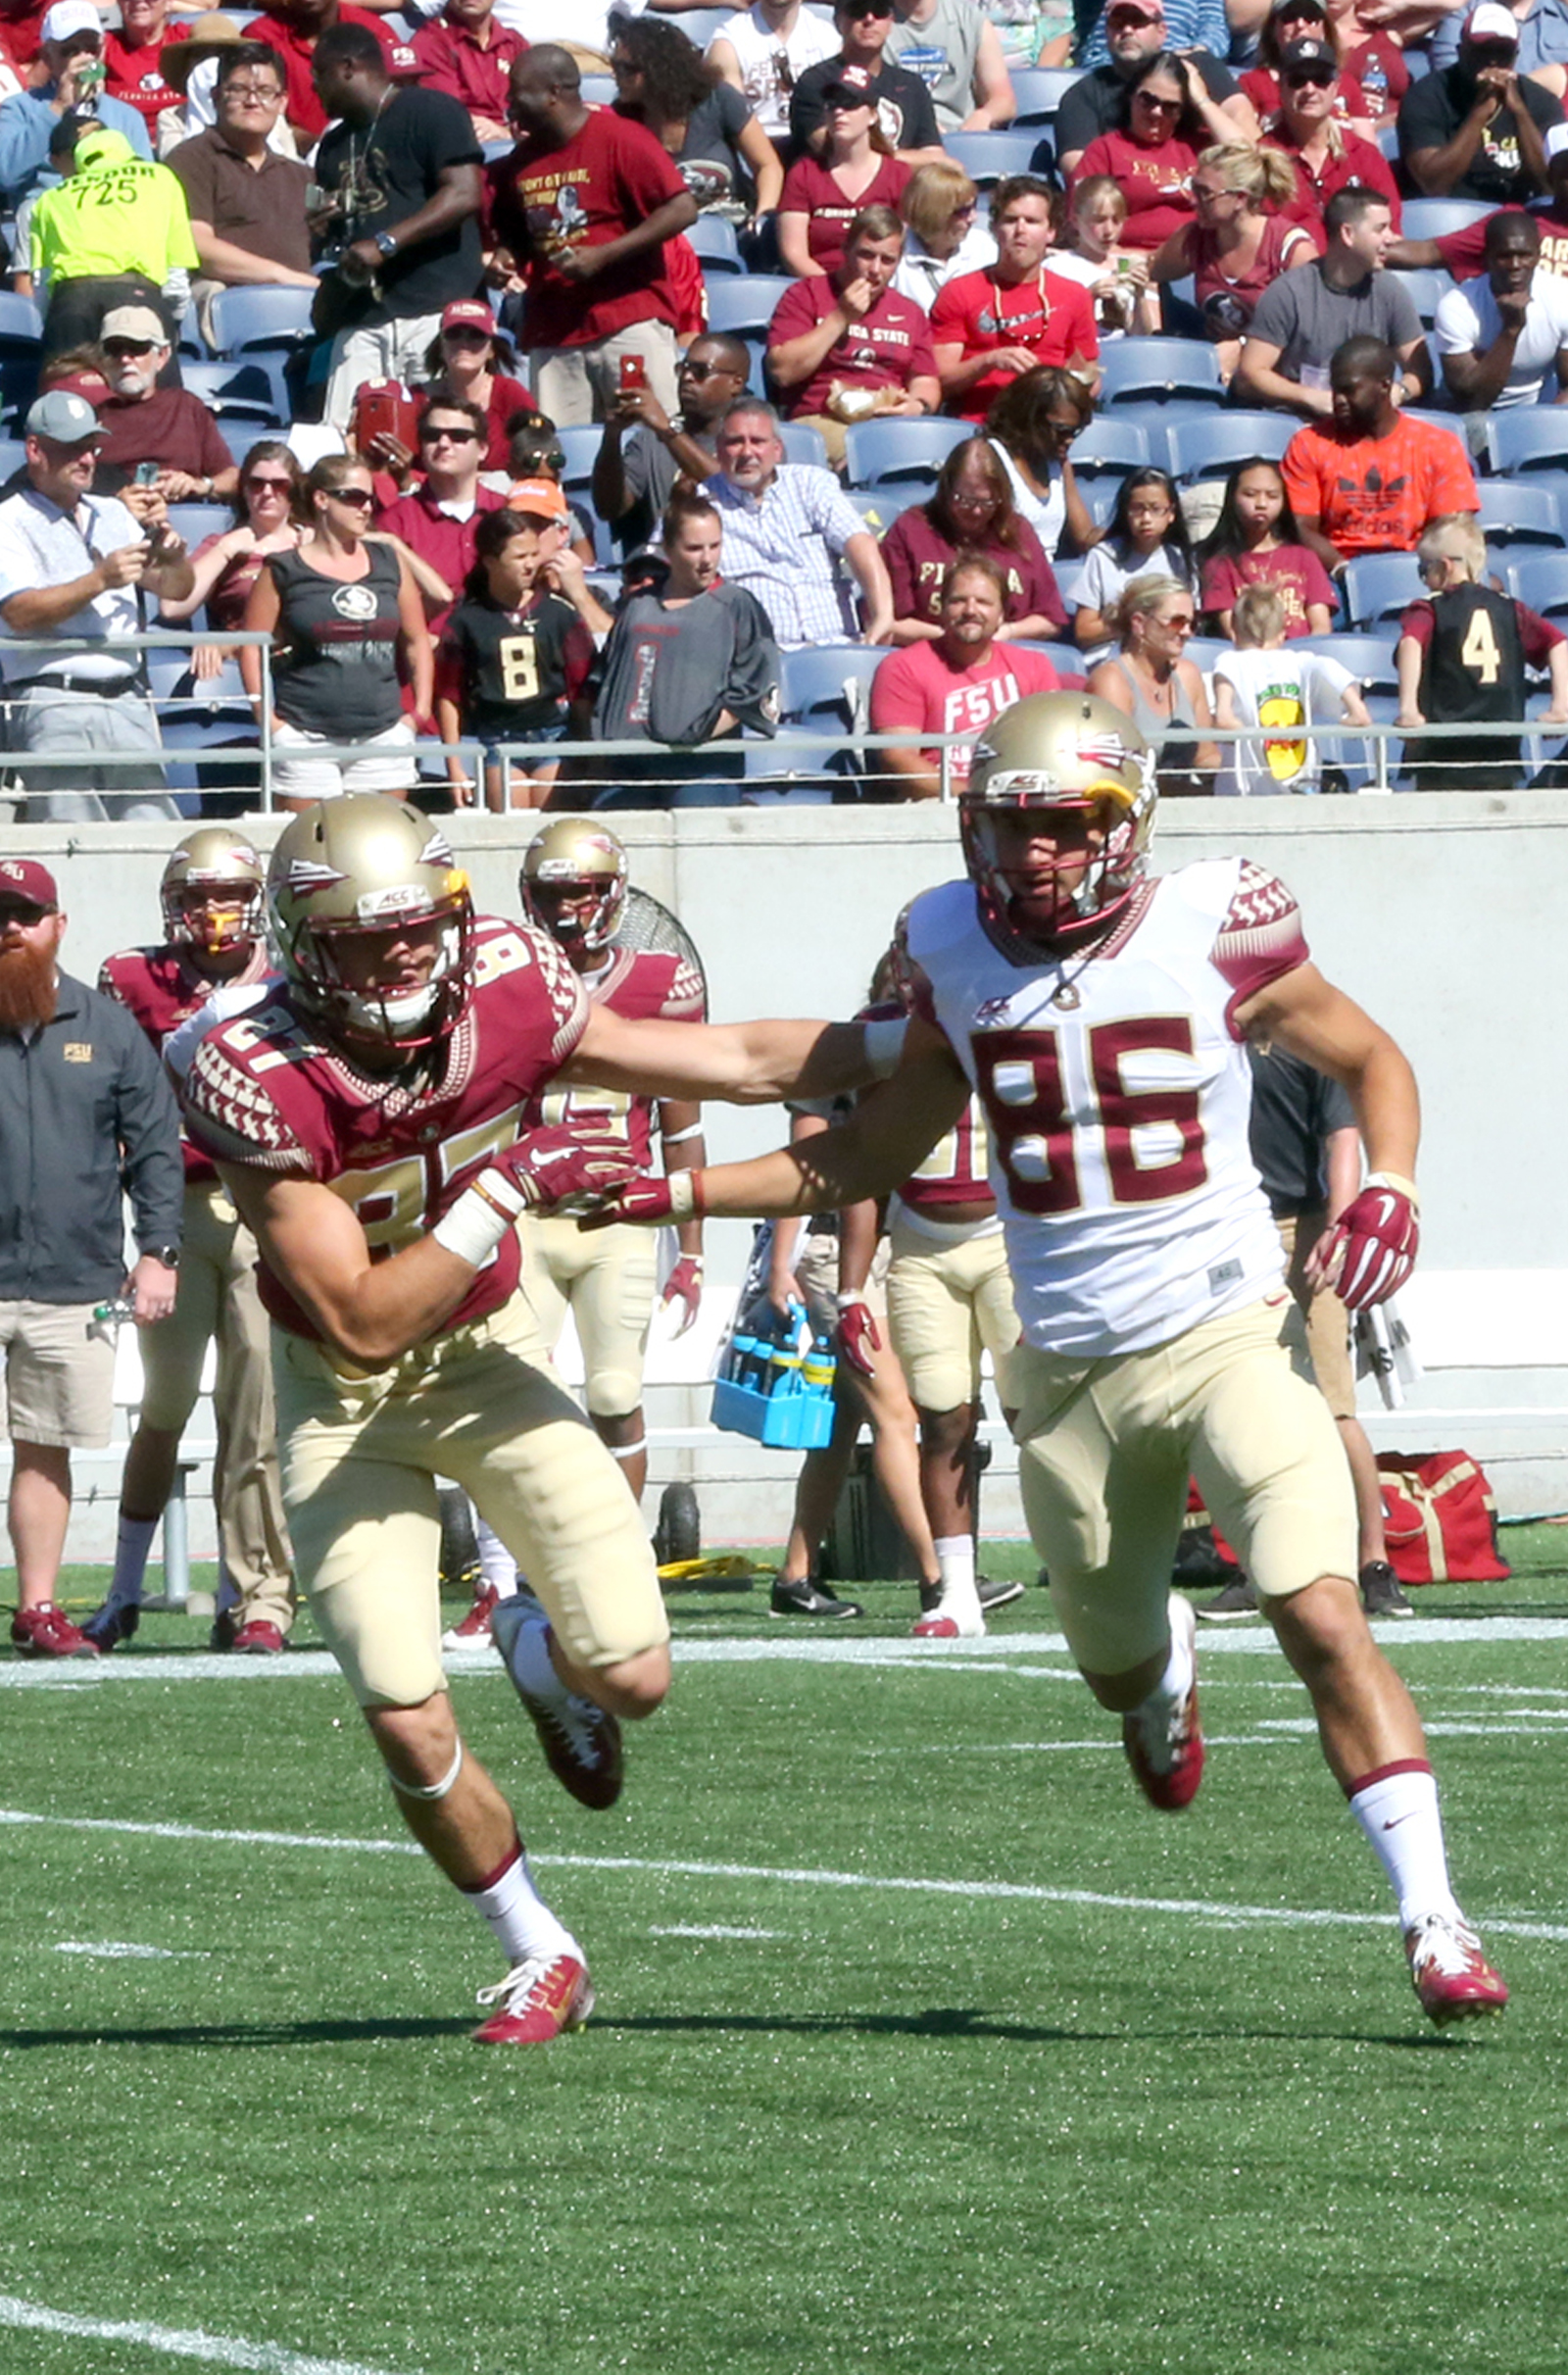 An announced crowd of more than 49,000 watch the Florida State Seminoles, including Justin Motlow (86), in the team's spring game April 9 at the Citrus Bowl in Orlando.